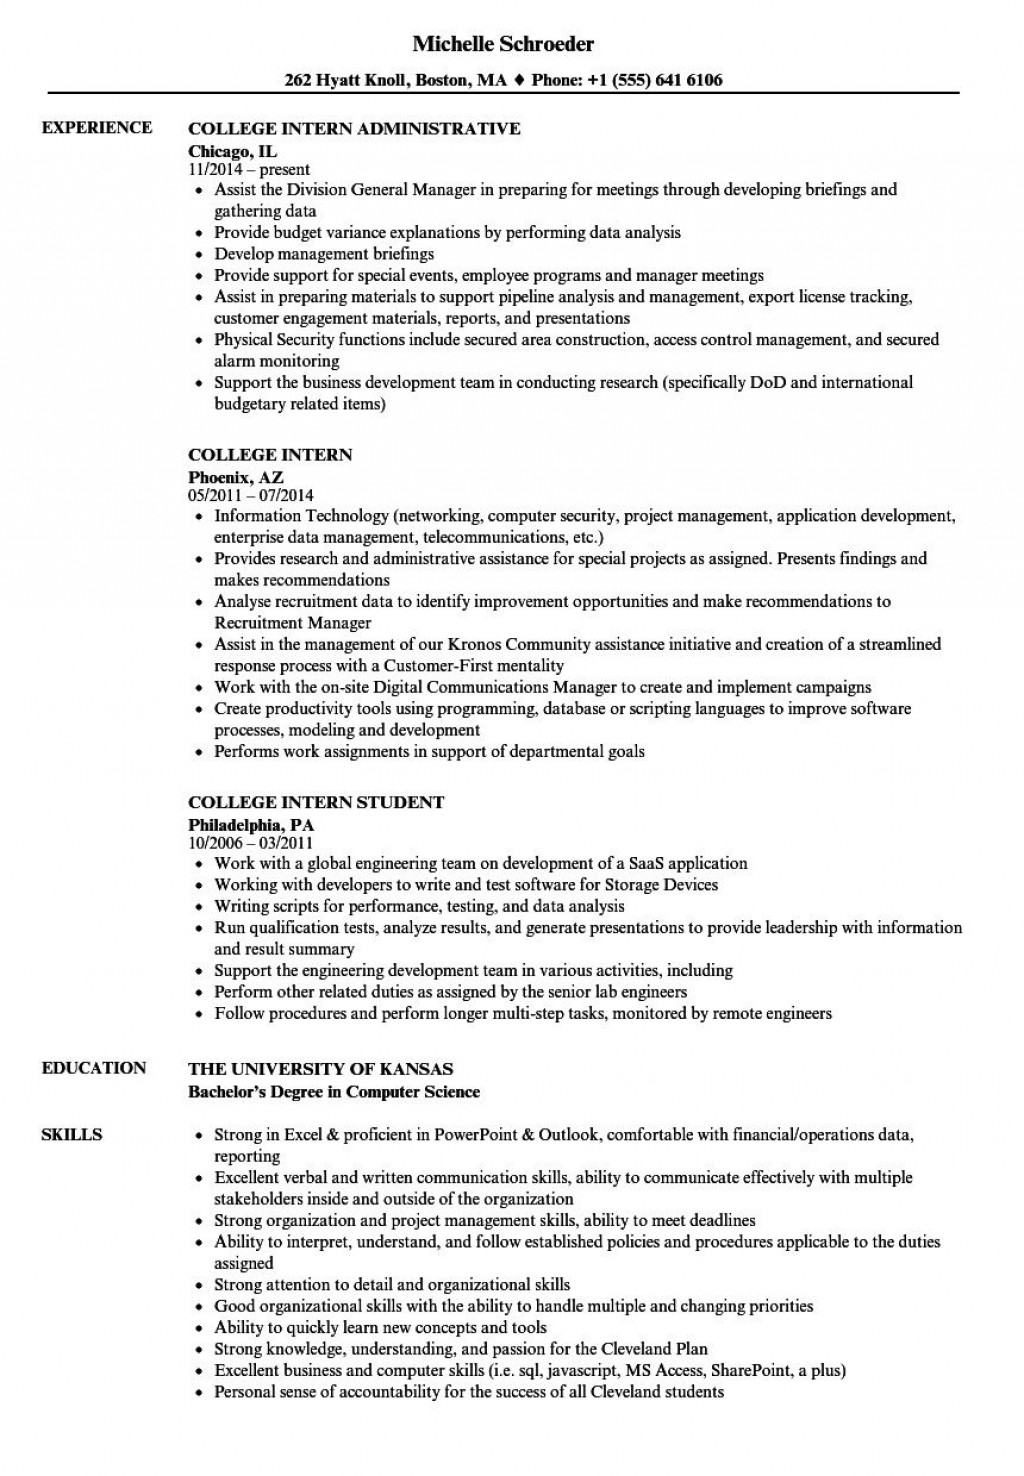 004 Outstanding College Internship Resume Template Example  Student Job For DownloadLarge